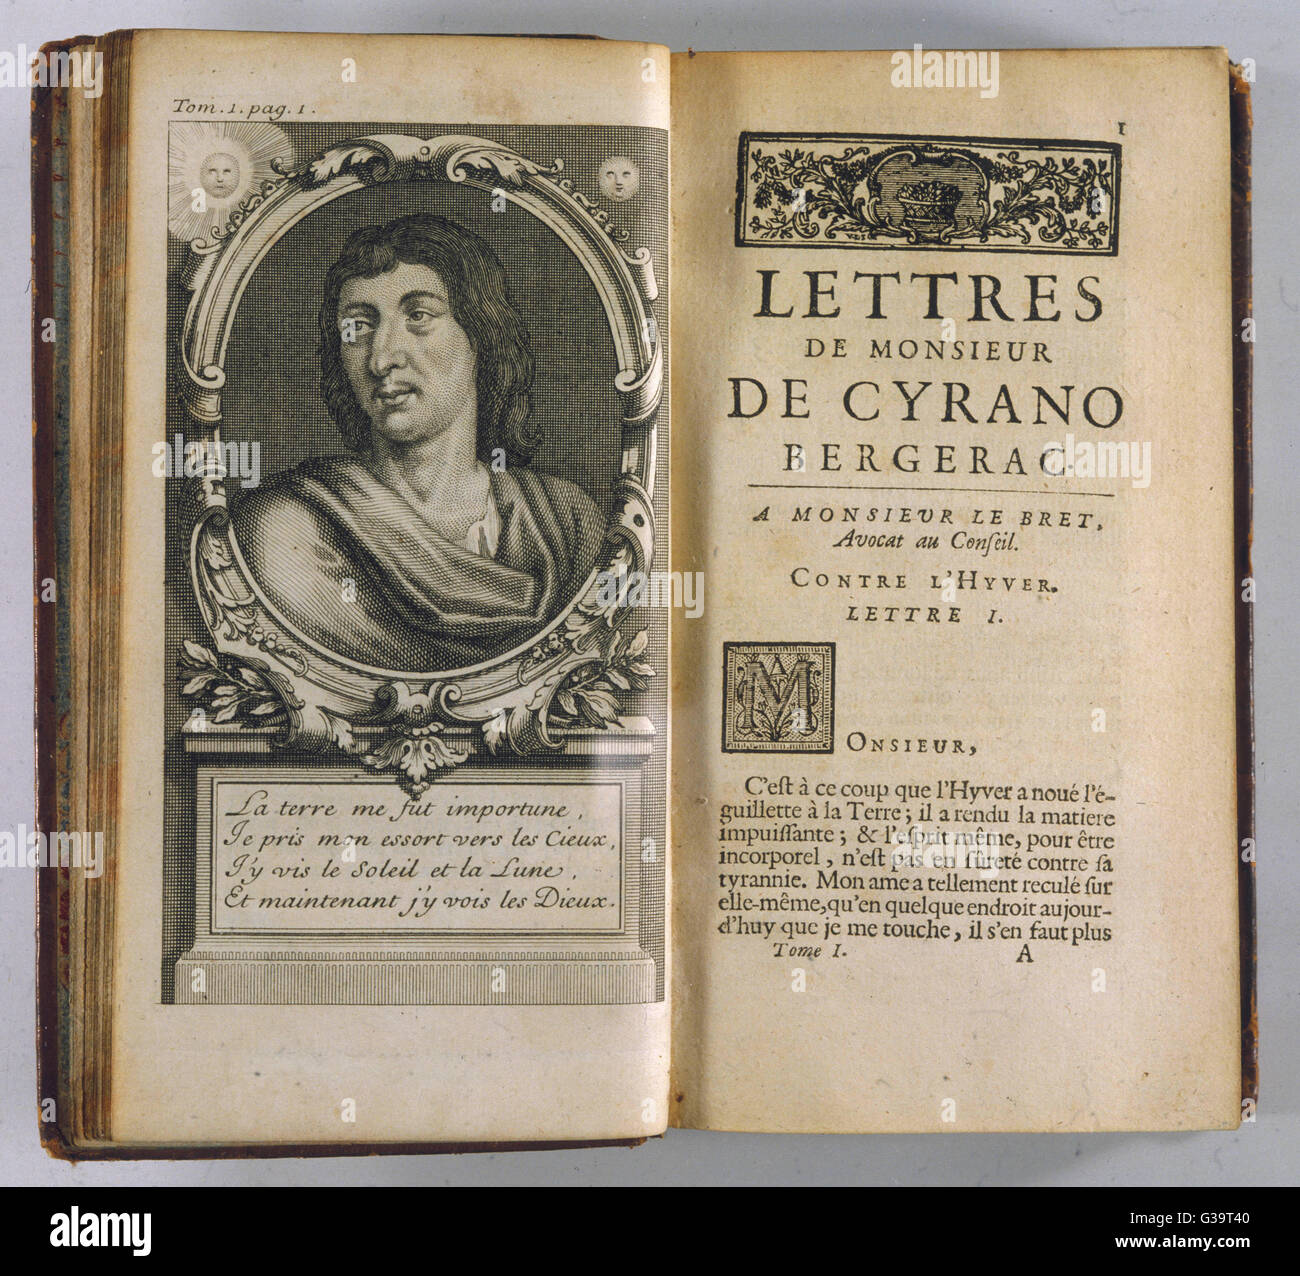 Savinien De Cyrano De Bergerac French Poet And Sol R